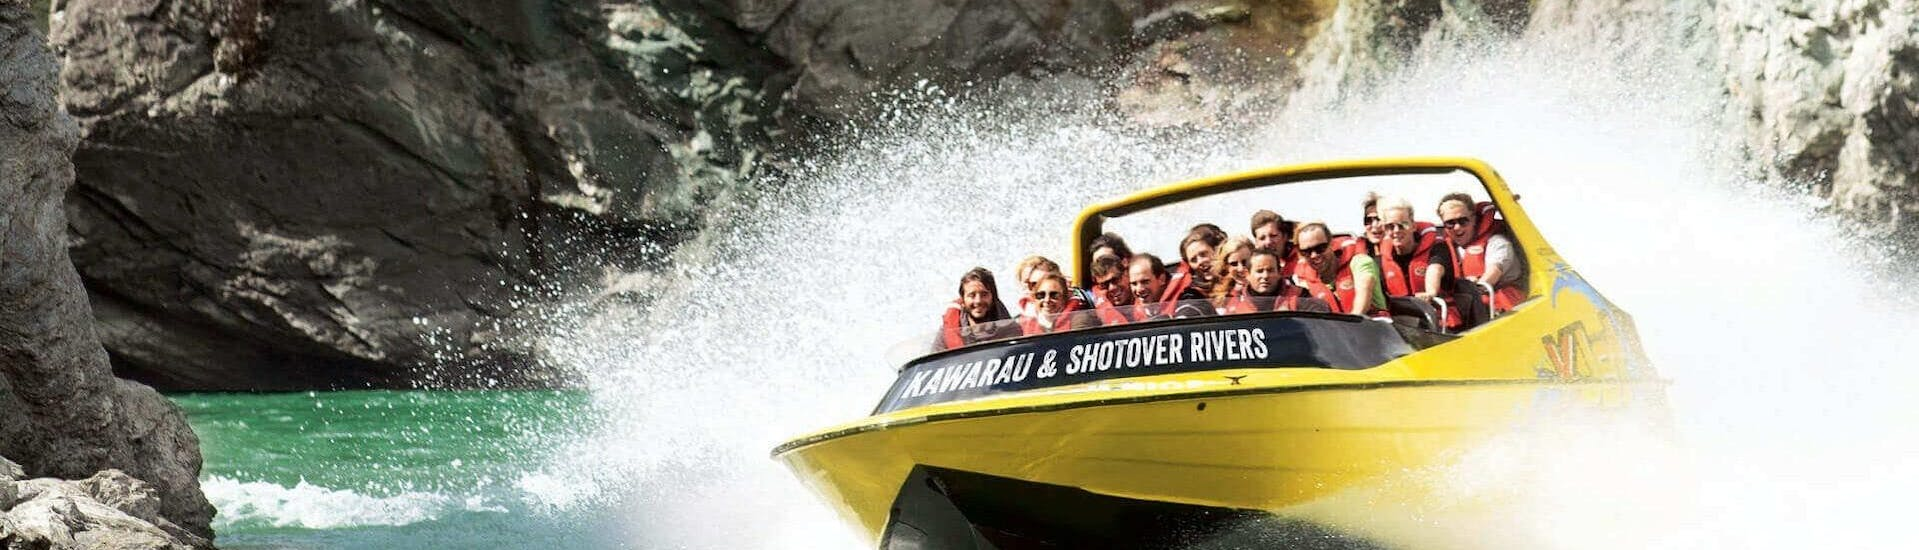 Guests are experiencing that their Jet Boat Ride and Time Tripper Combo in Queenstown with KJet Queenstown is full of thrills and adrenaline.